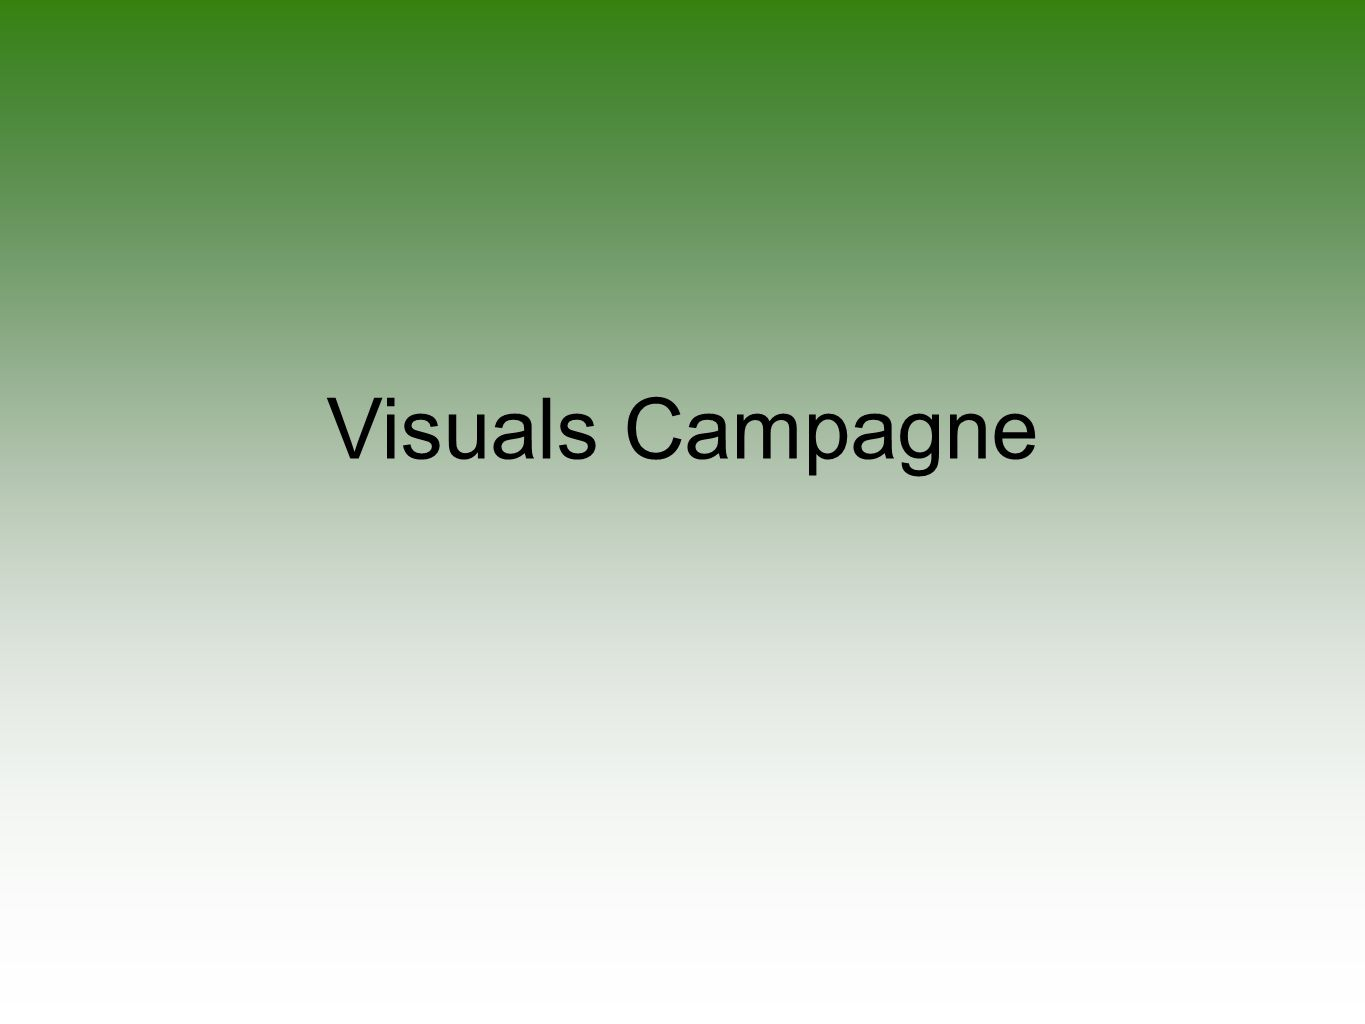 Visuals Campagne